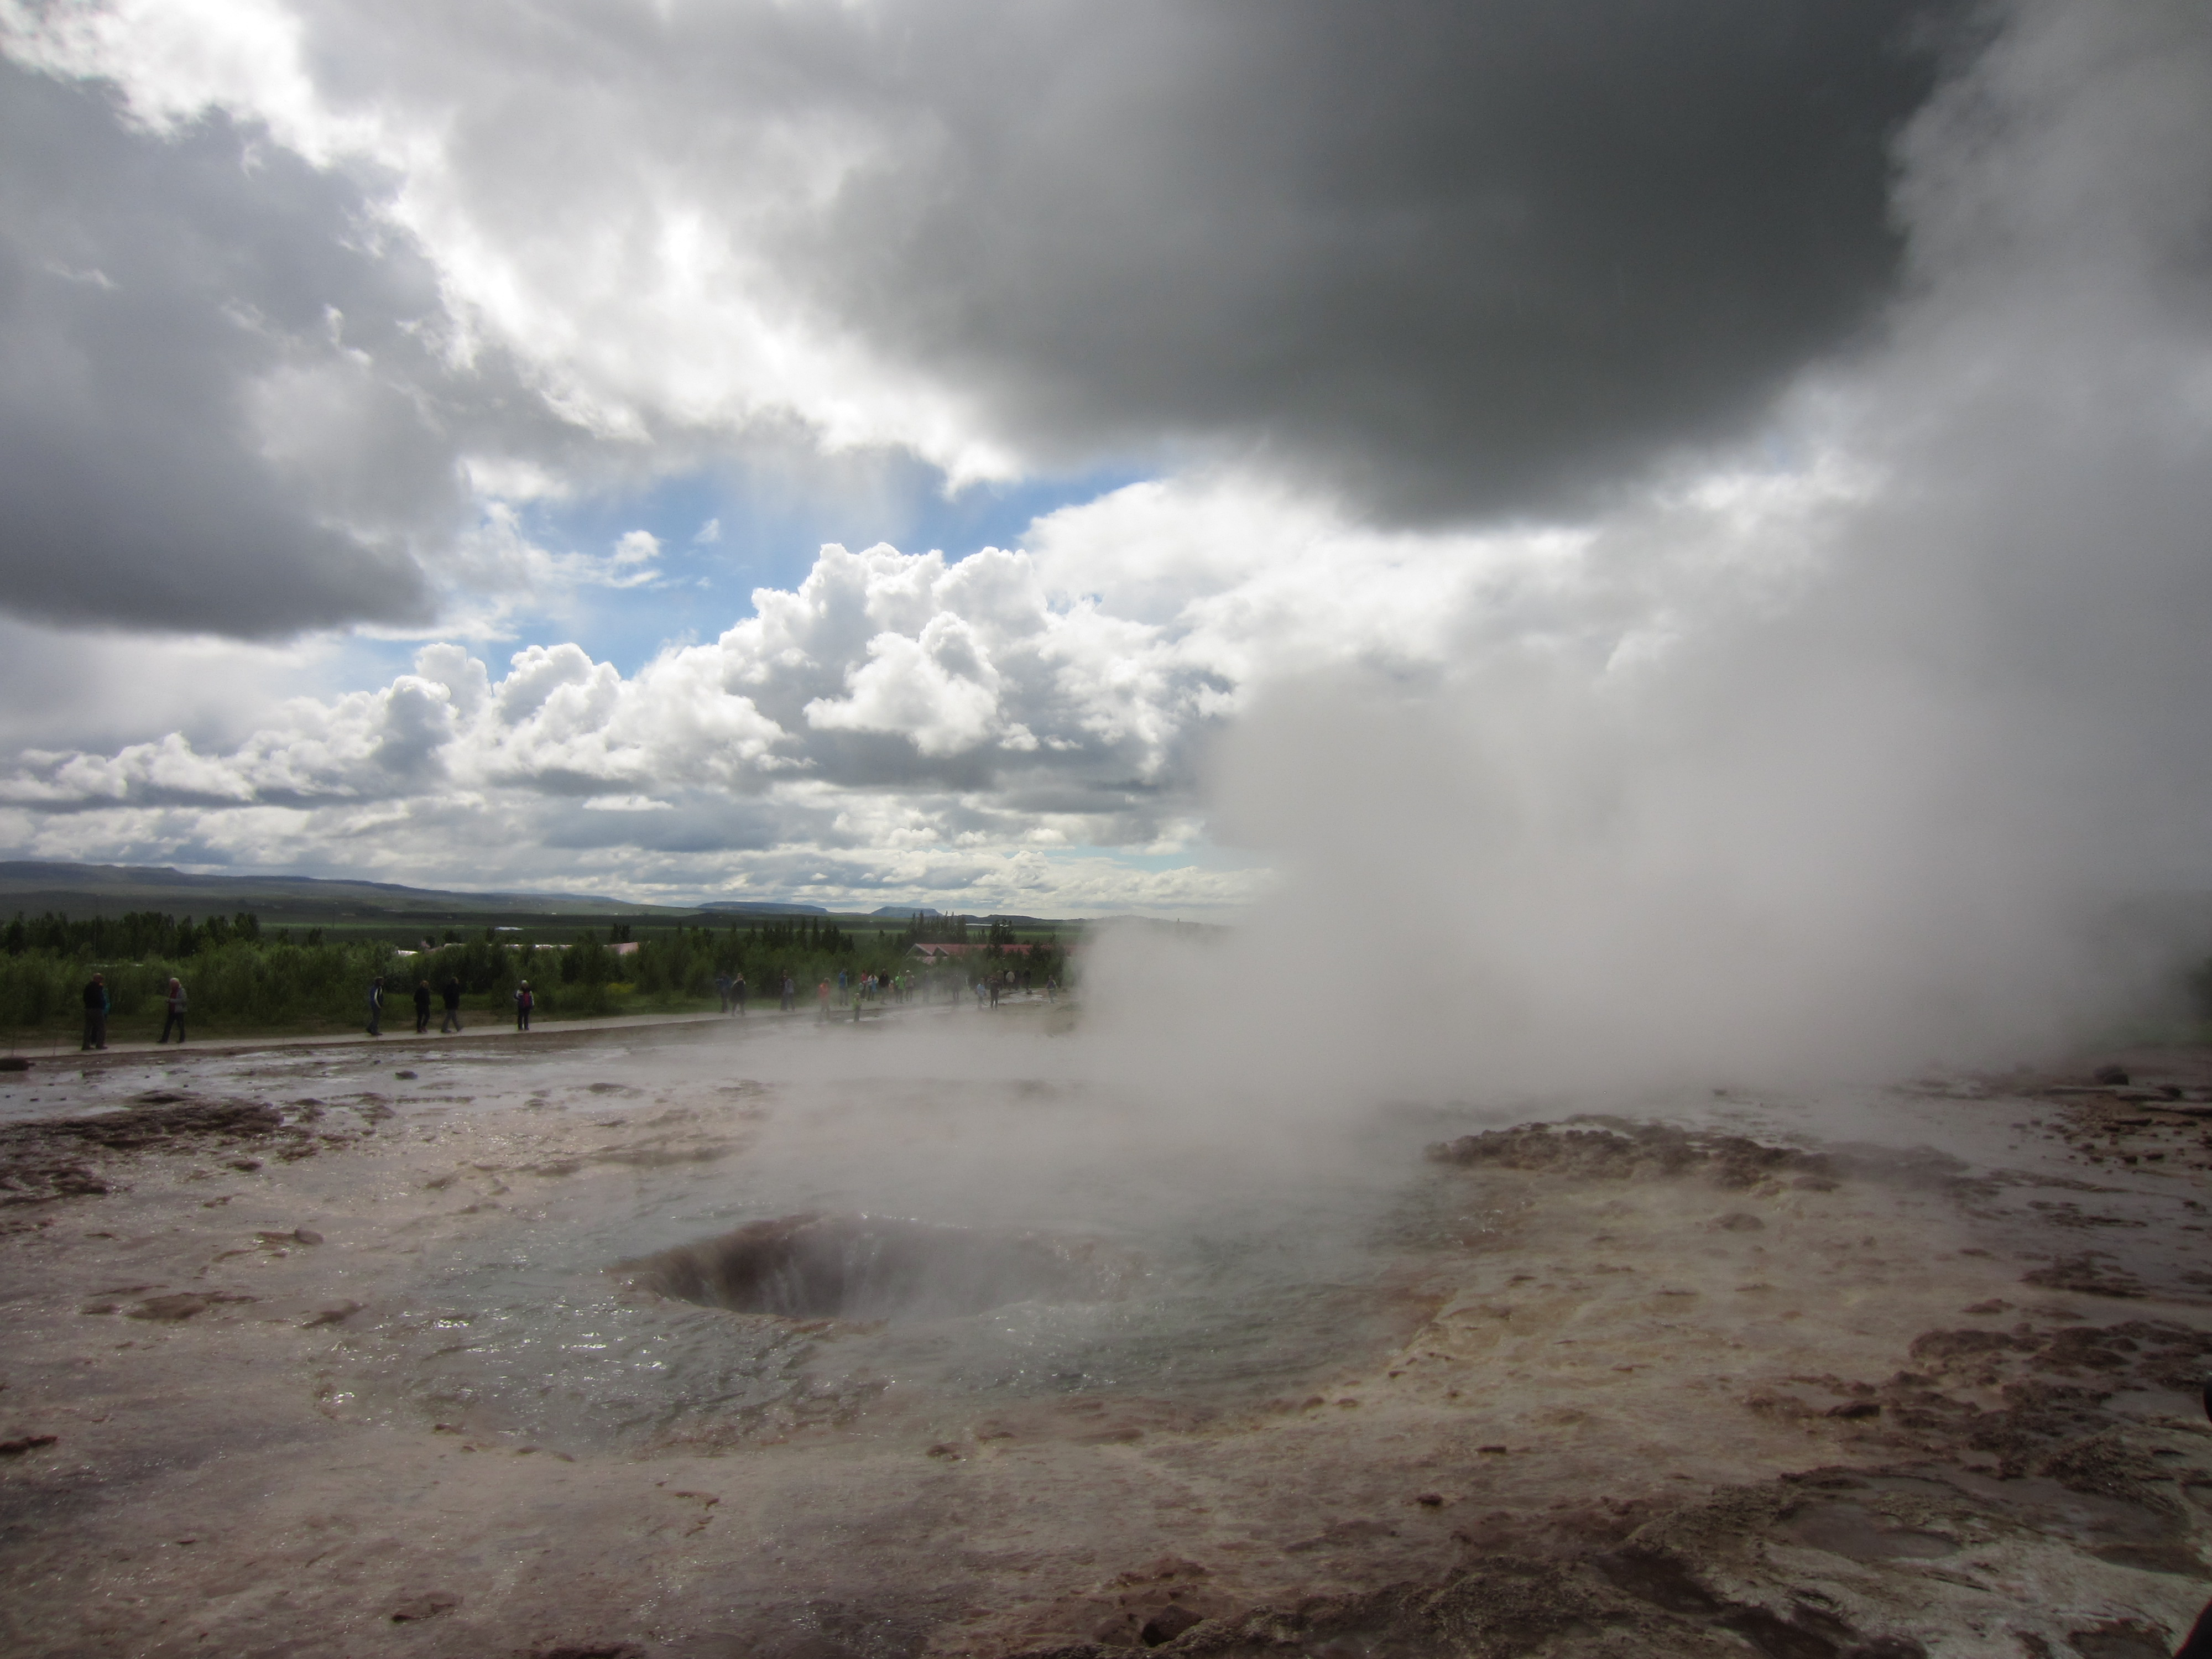 a geysir hole refills after an explosion